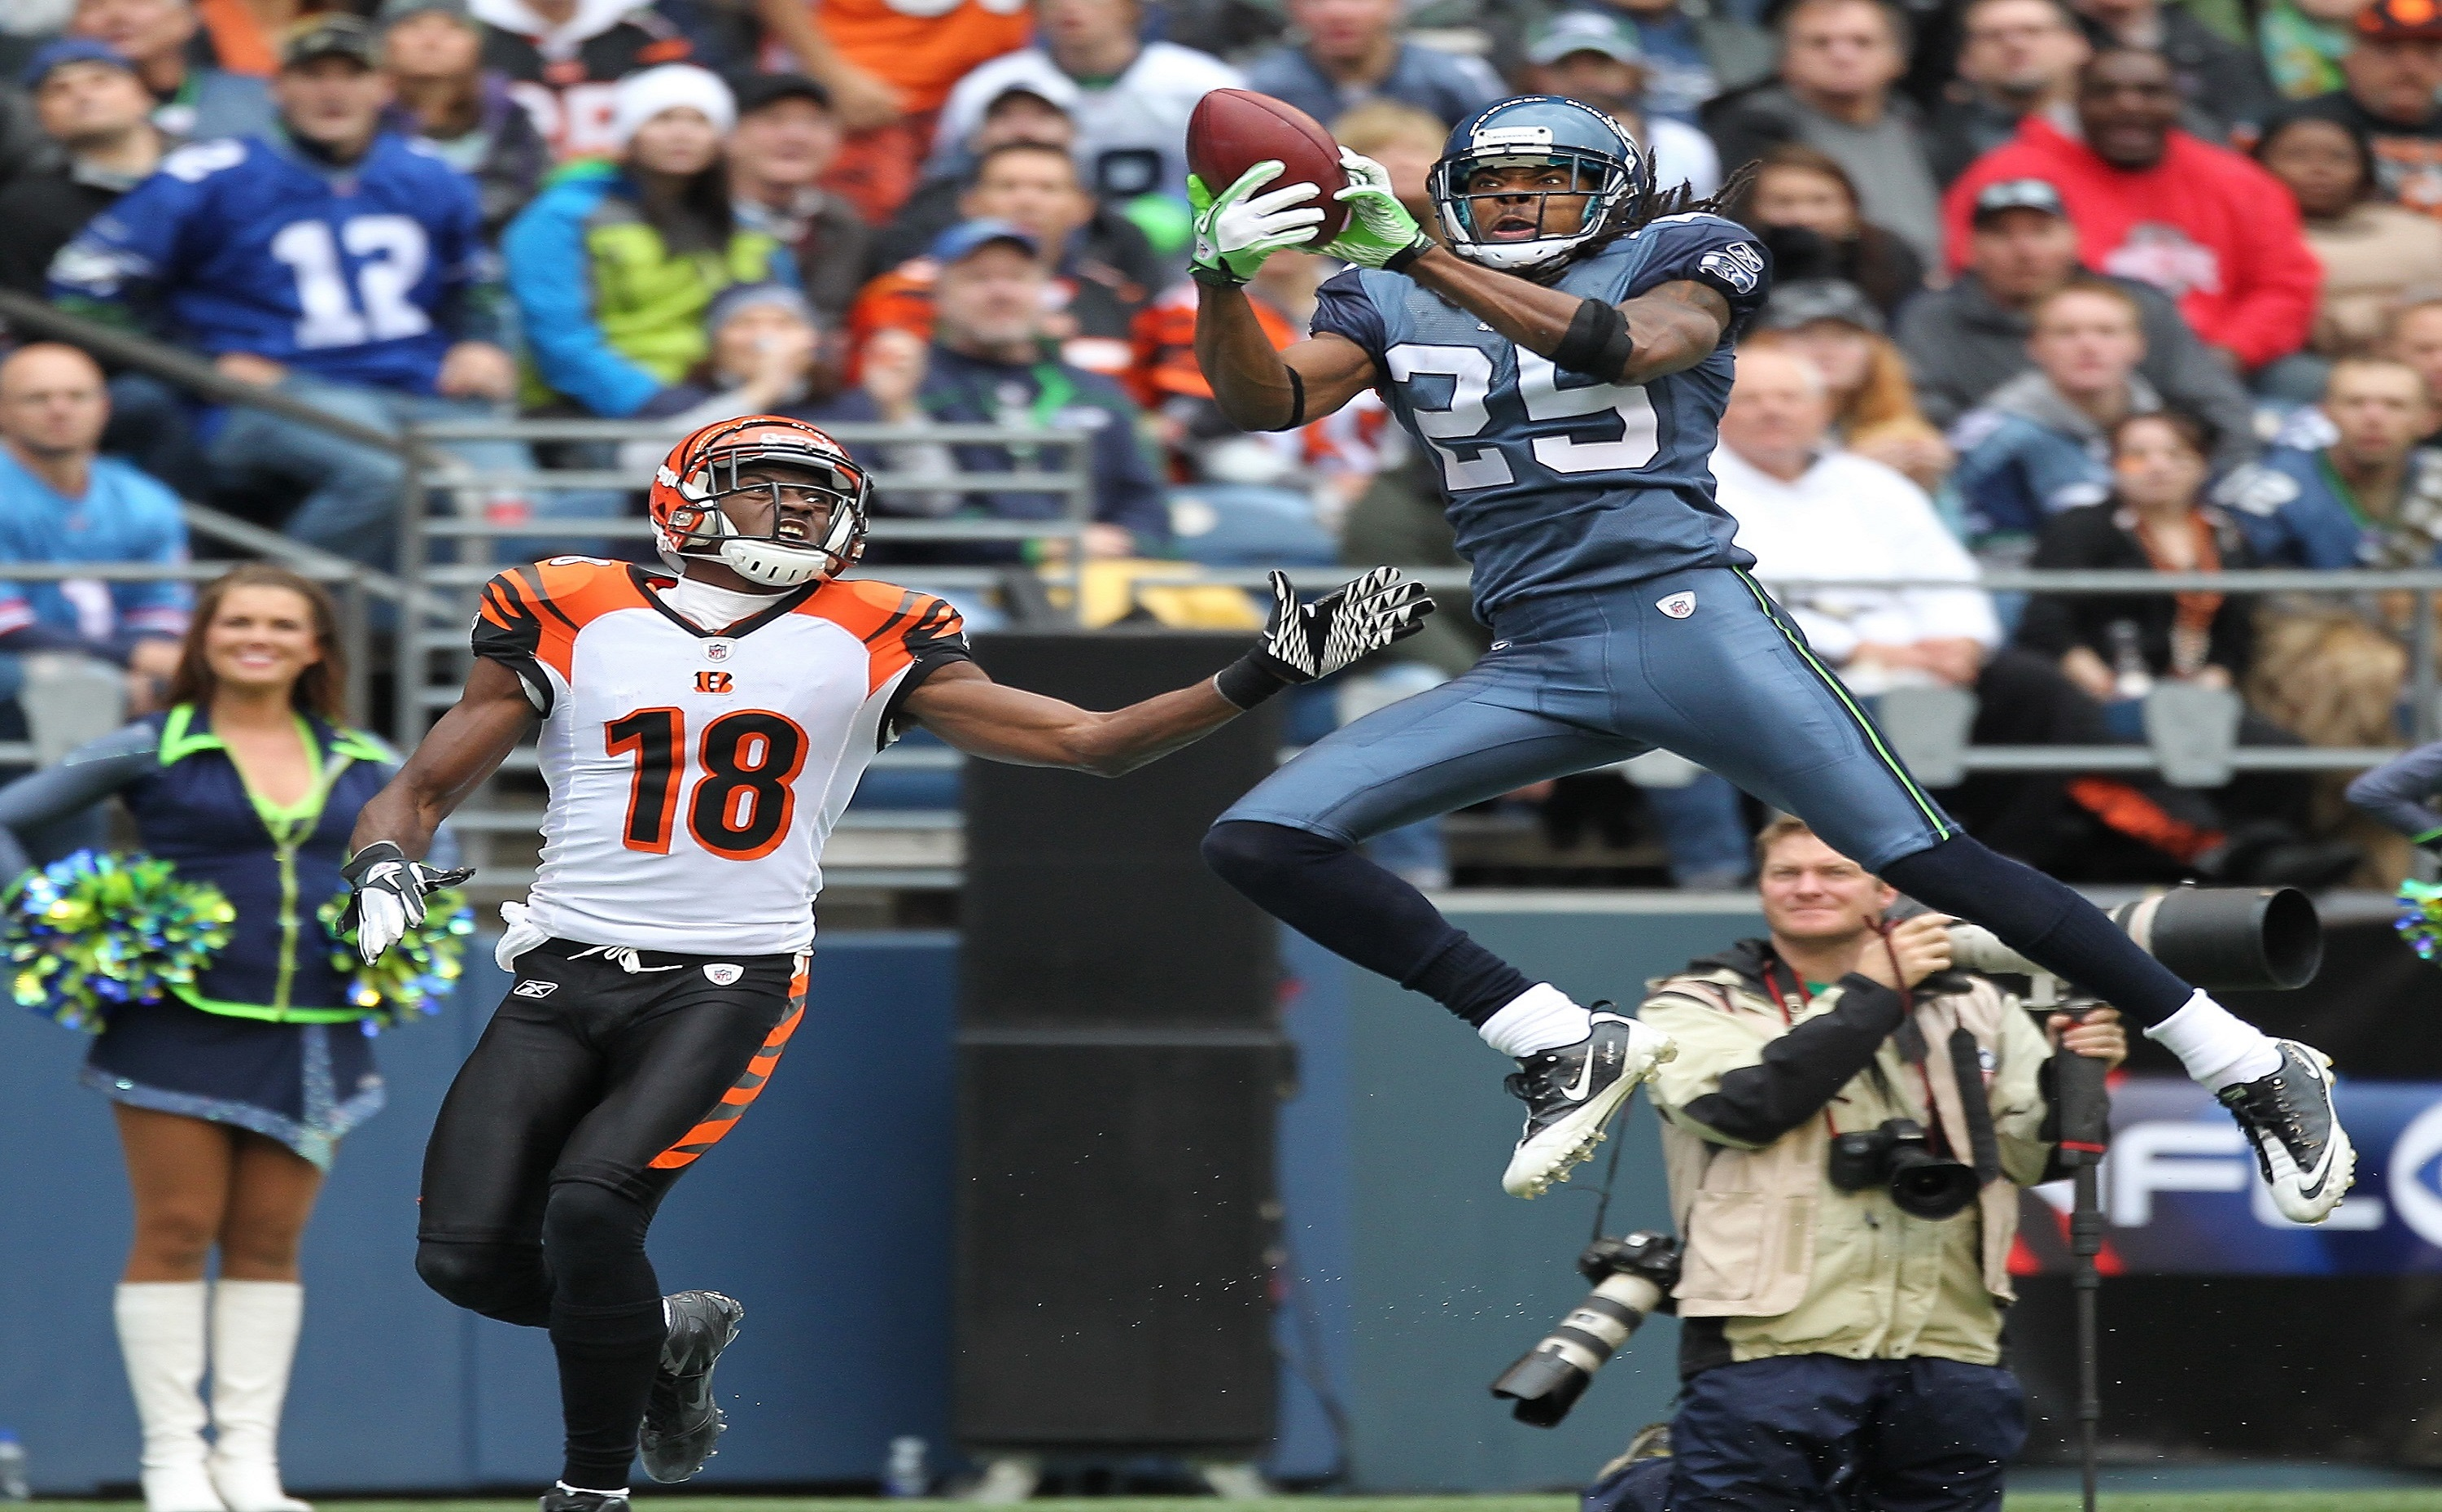 SEATTLE - OCTOBER 30:  Cornerback Richard Sherman #25 of the Seattle Seahawks makes an interception against A.J. Green #18 of the Cincinnati Bengals at CenturyLink Field on October 30, 2011 in Seattle, Washington. The Bengals defeated the Seahawks 34-12.(Photo by Otto Greule Jr/Getty Images)